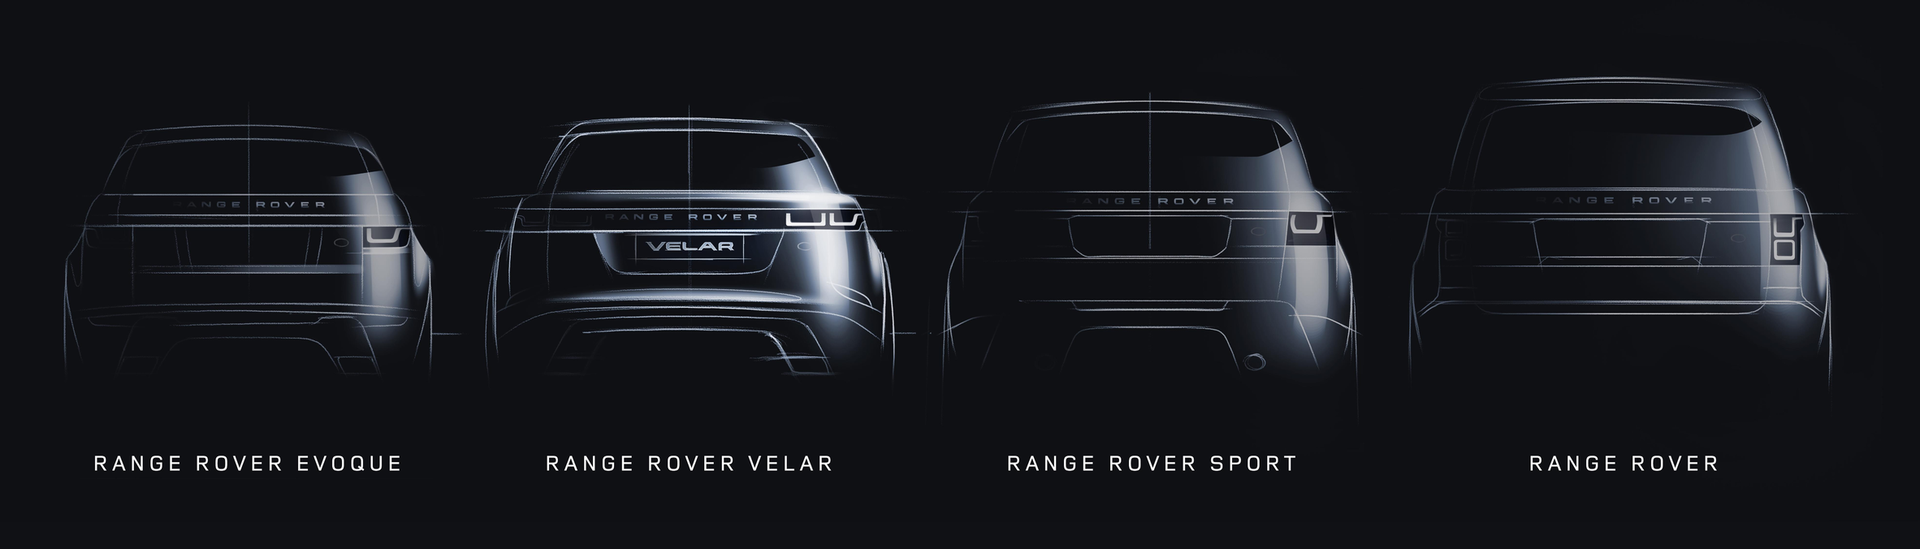 Range Rover Line Up with Velar between Evoque and Sport